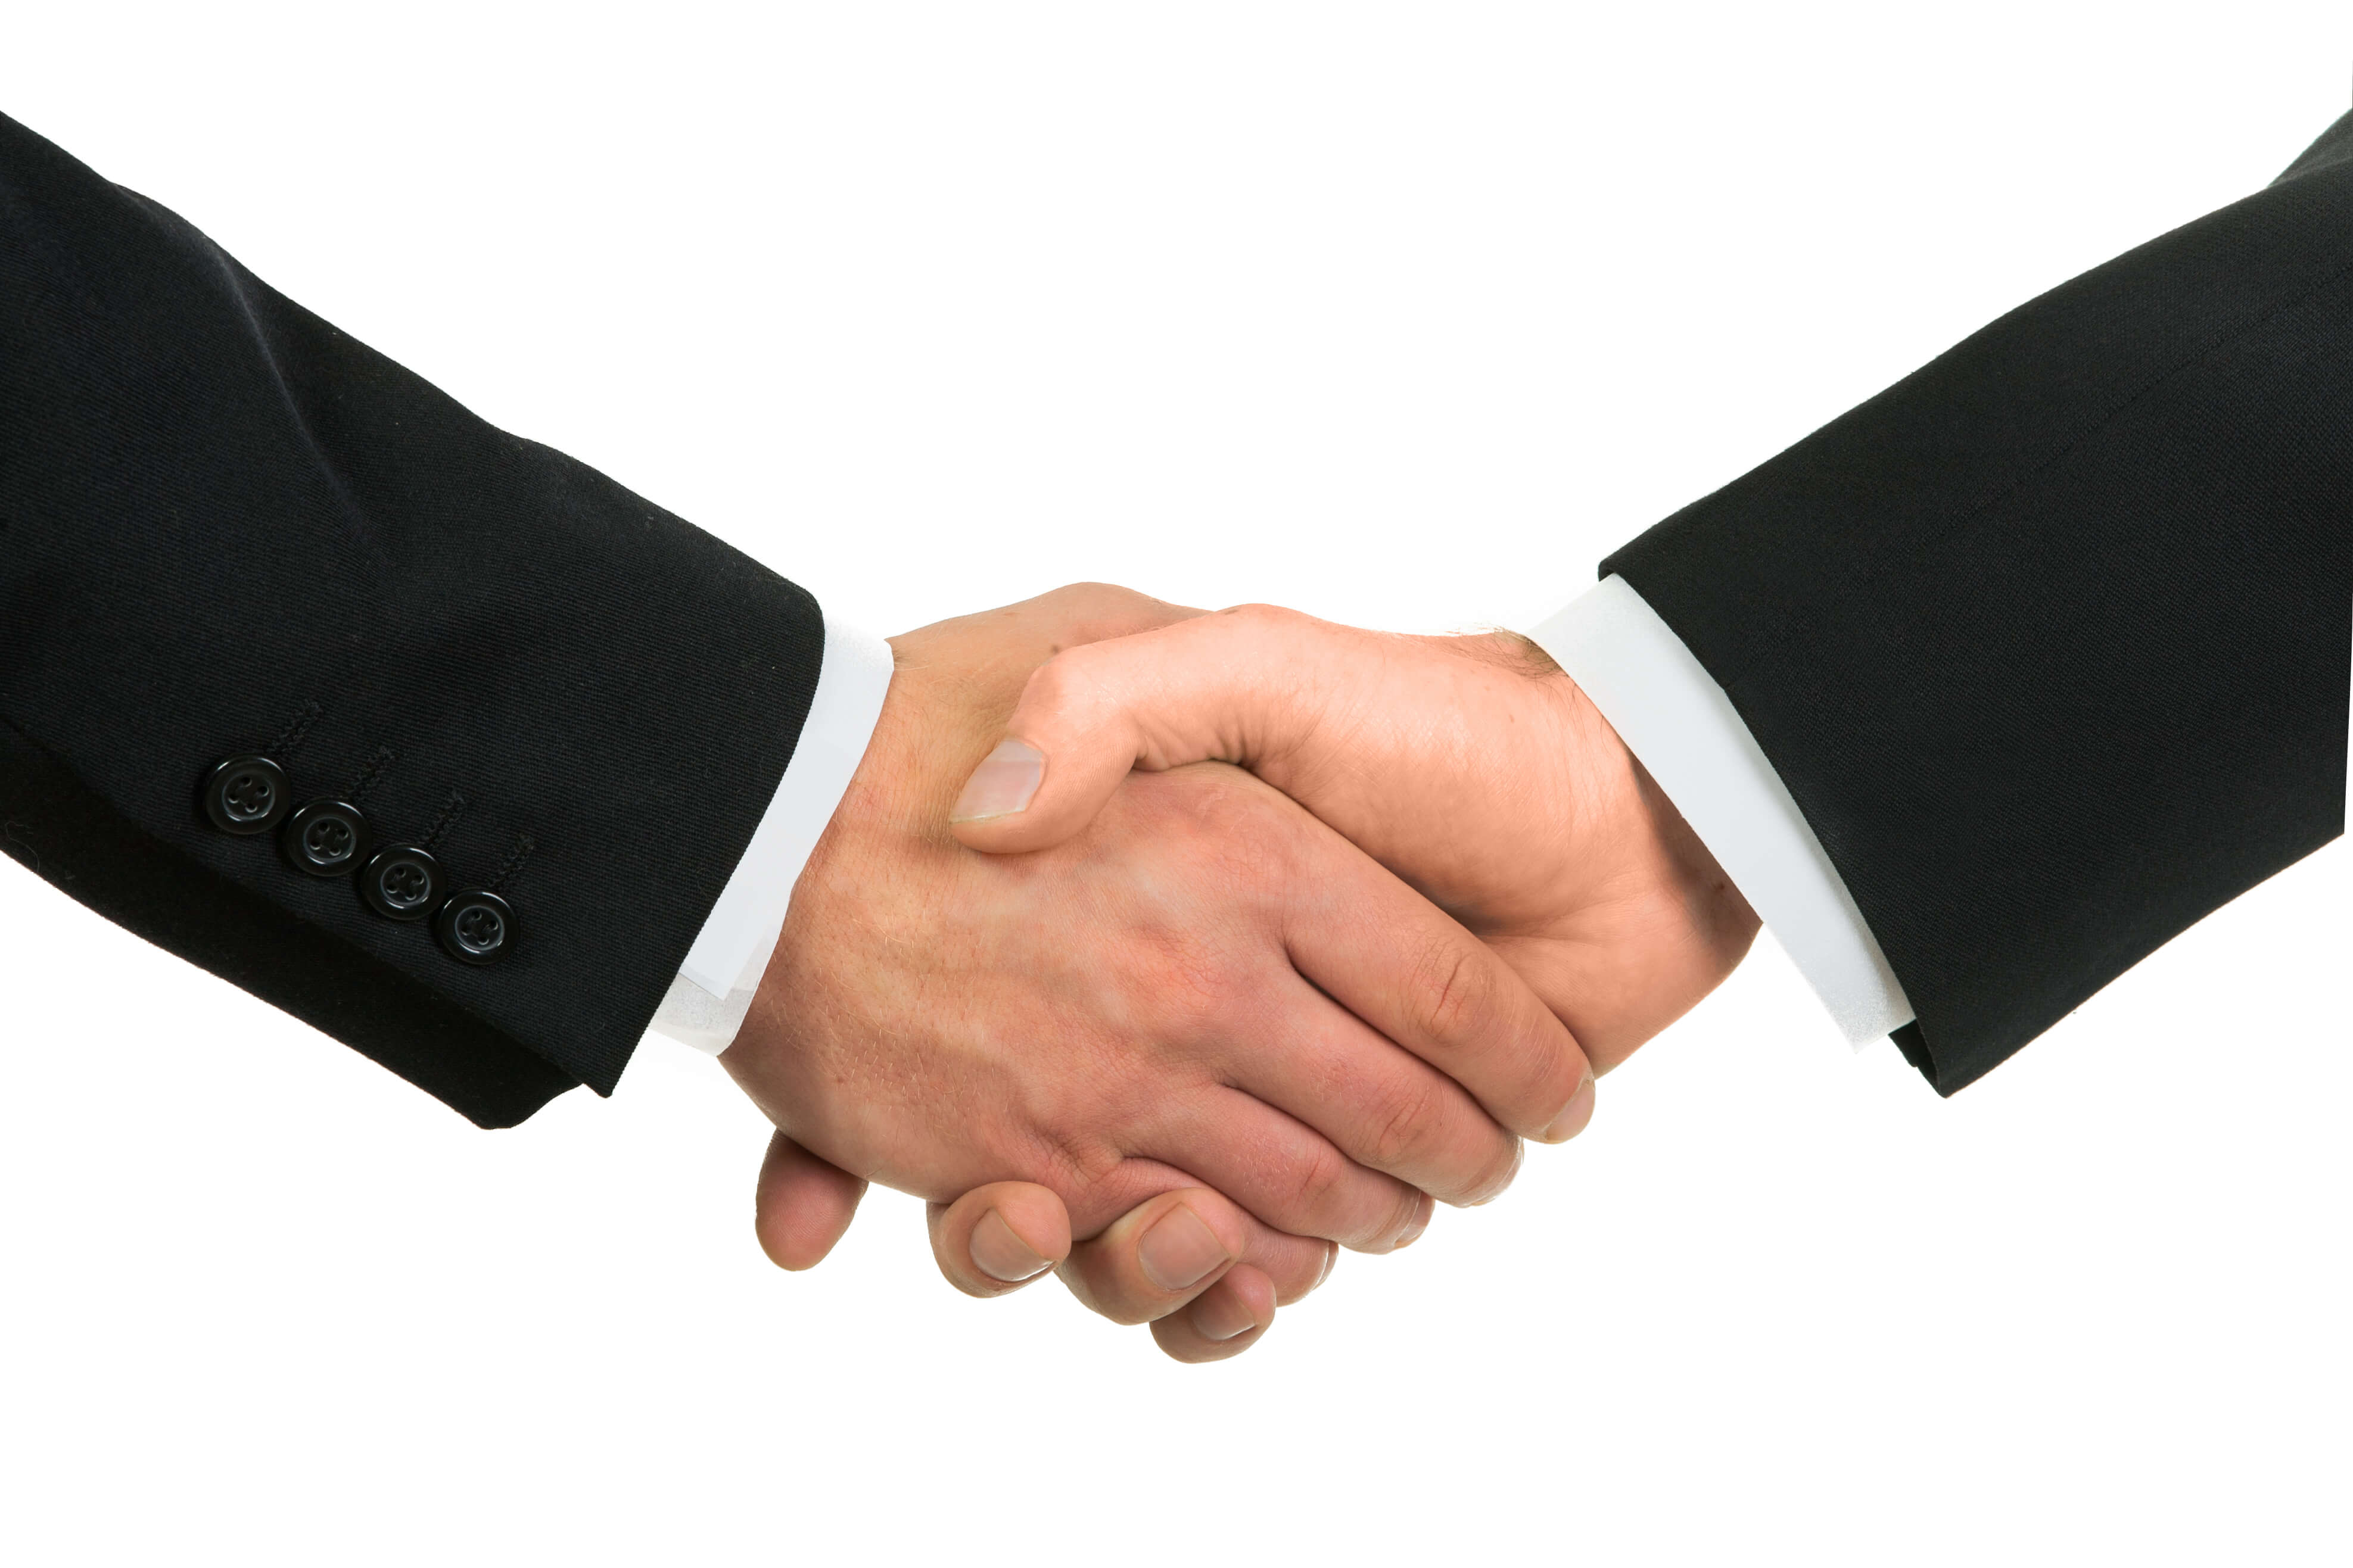 business handshake between a man and a woman